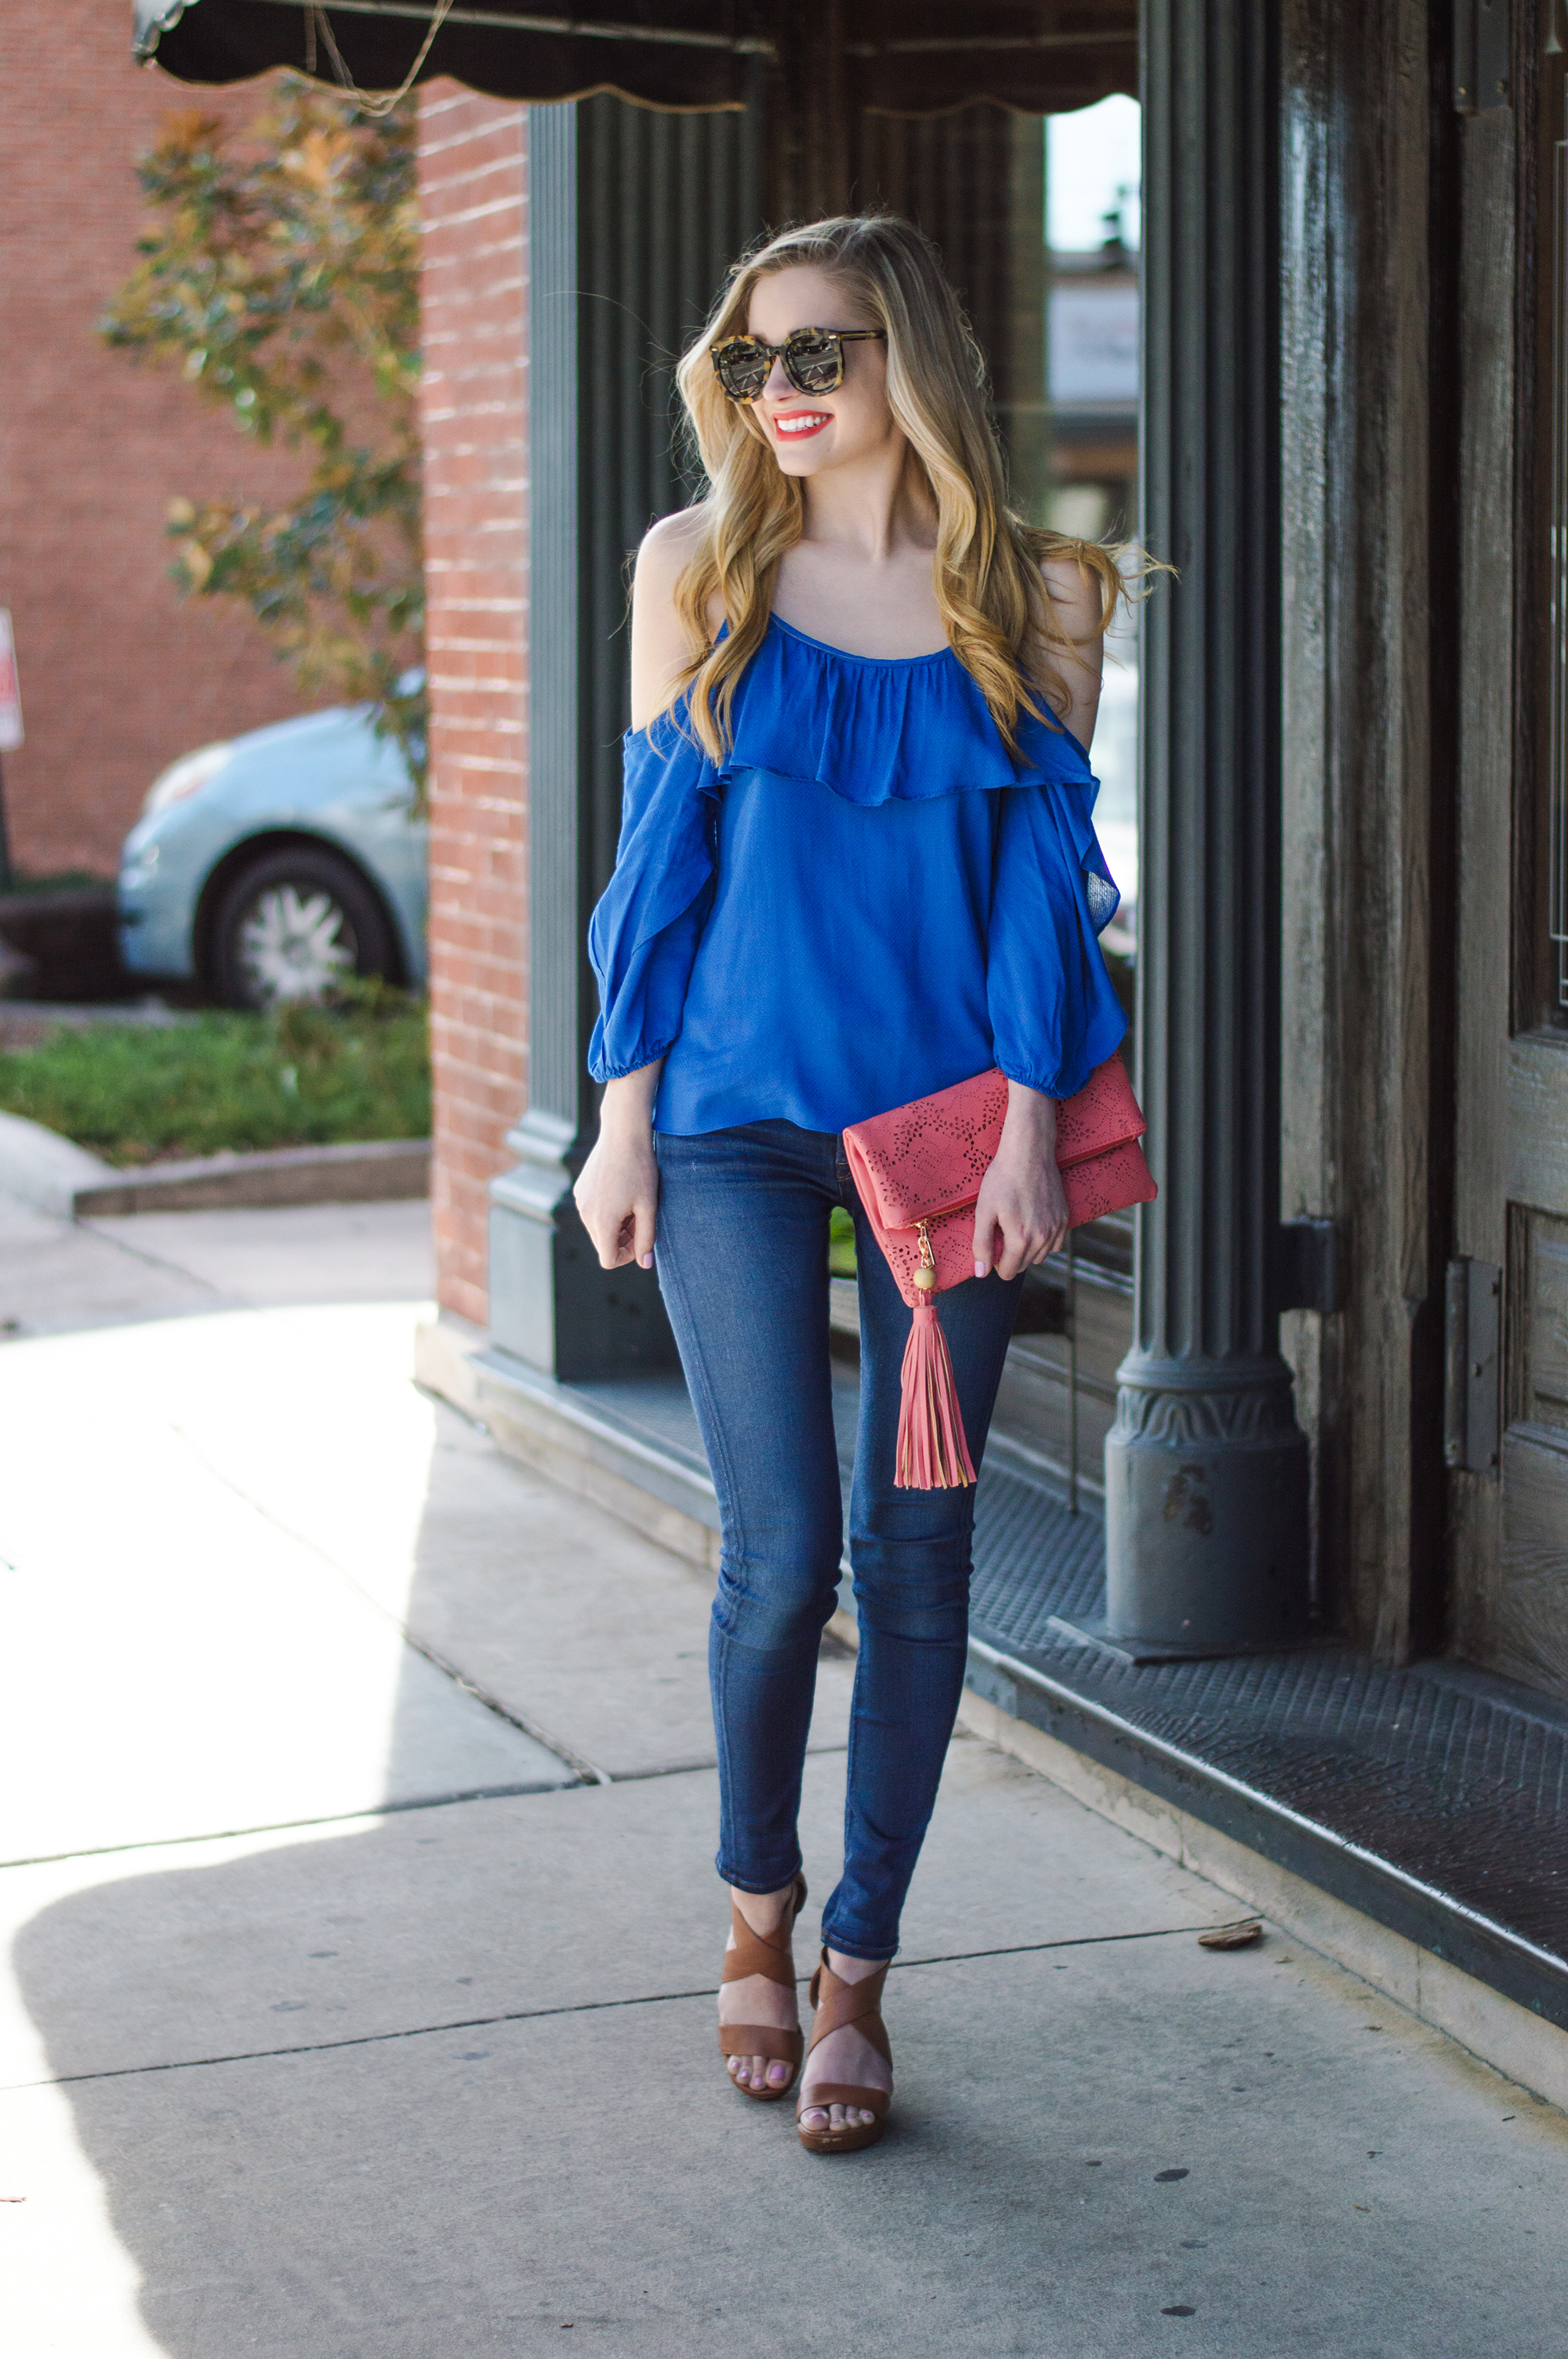 styelled-blog-elle-elisabeth-ootd-hudson-jeans-off-the-shoulder-top-karen-walker-super-duper-thistle-mac-lady-danger-jessica-simpson-brick-city-closet-spring-blue-08